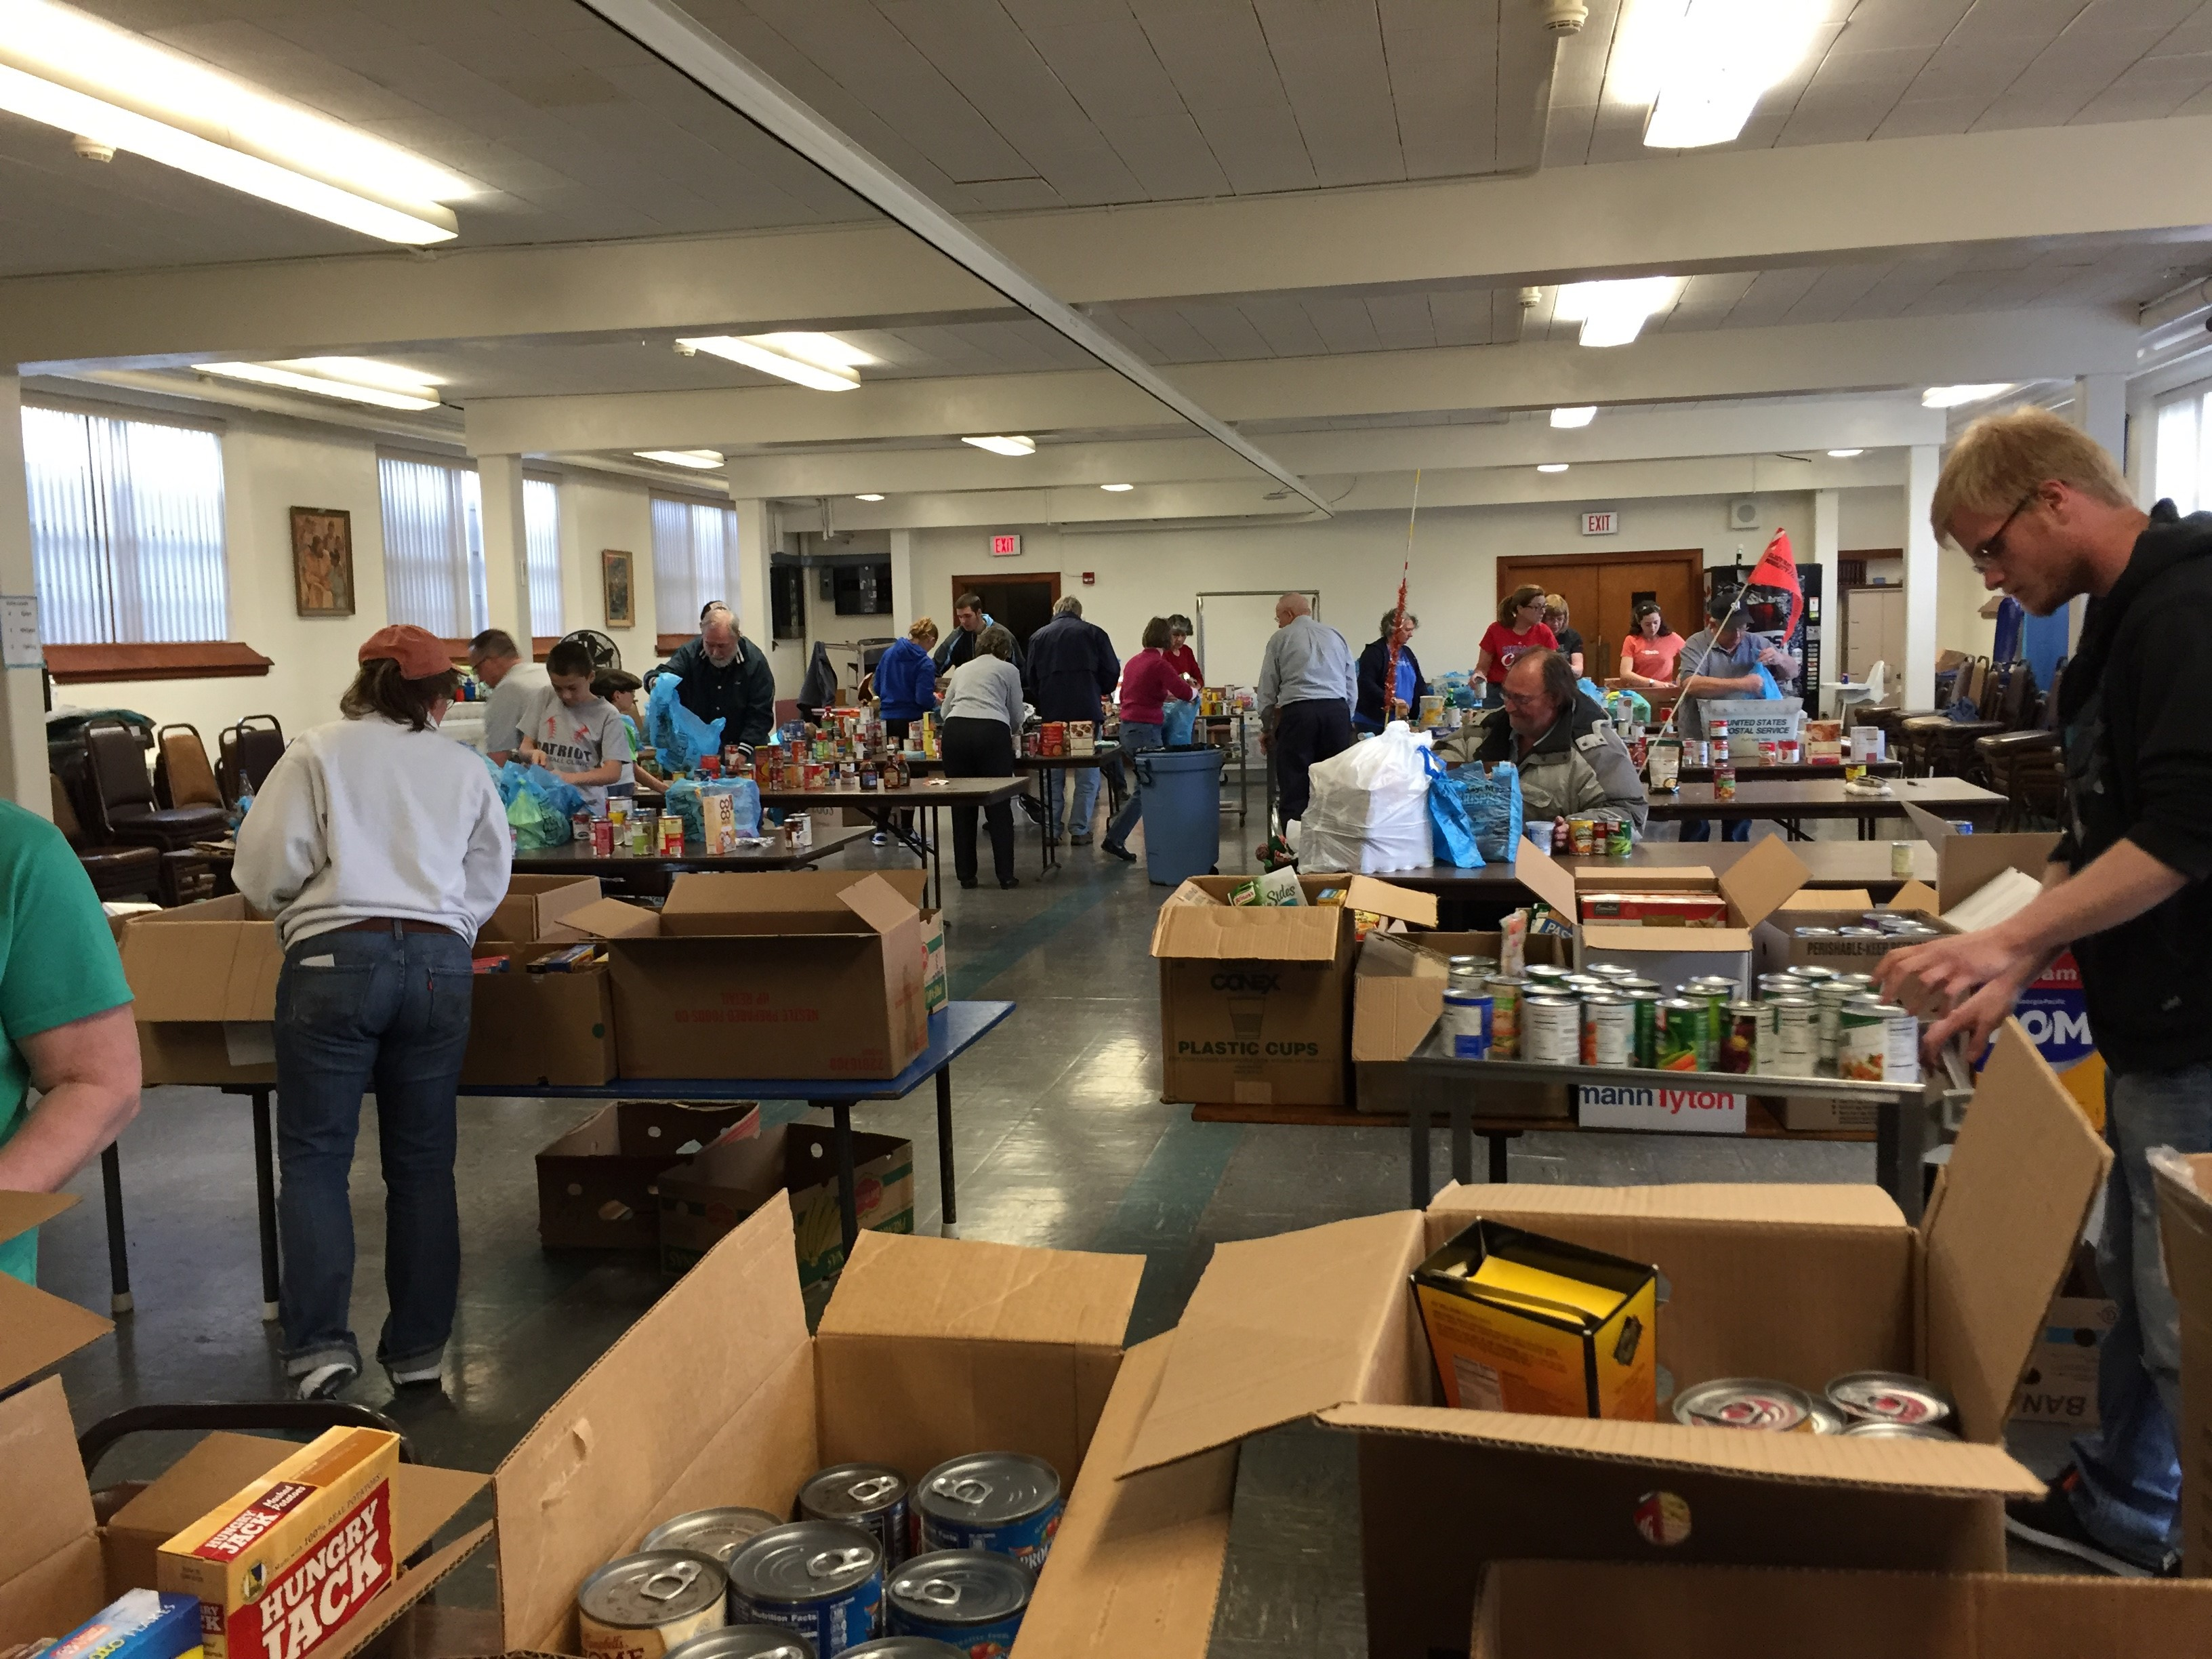 food pantry sorting donations